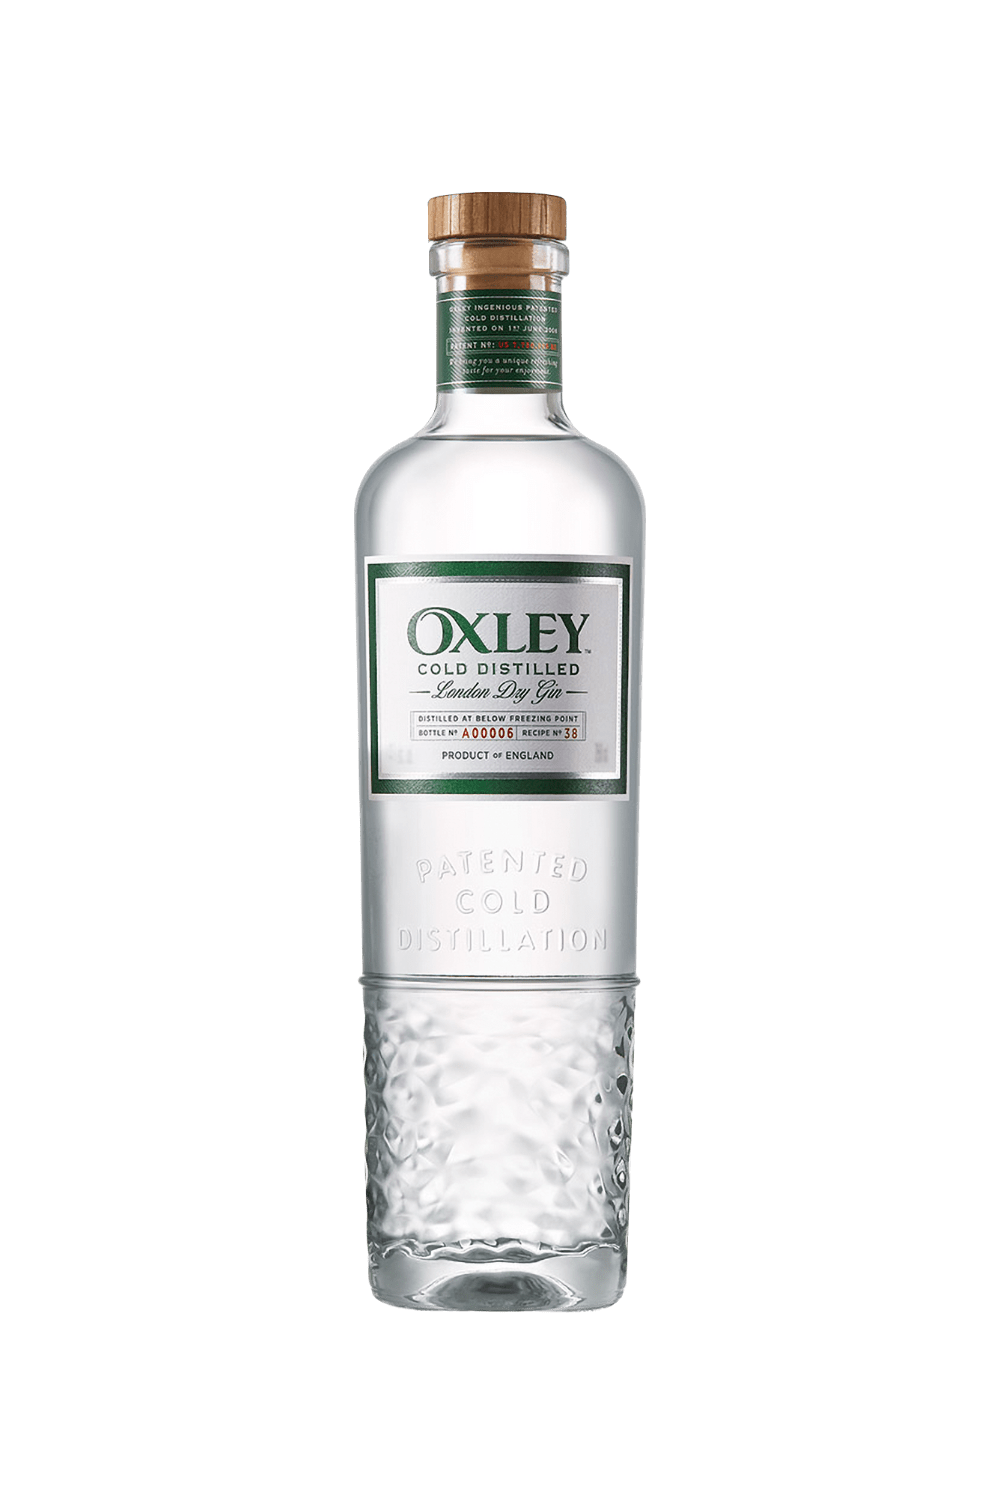 Oxley London Dry Gin